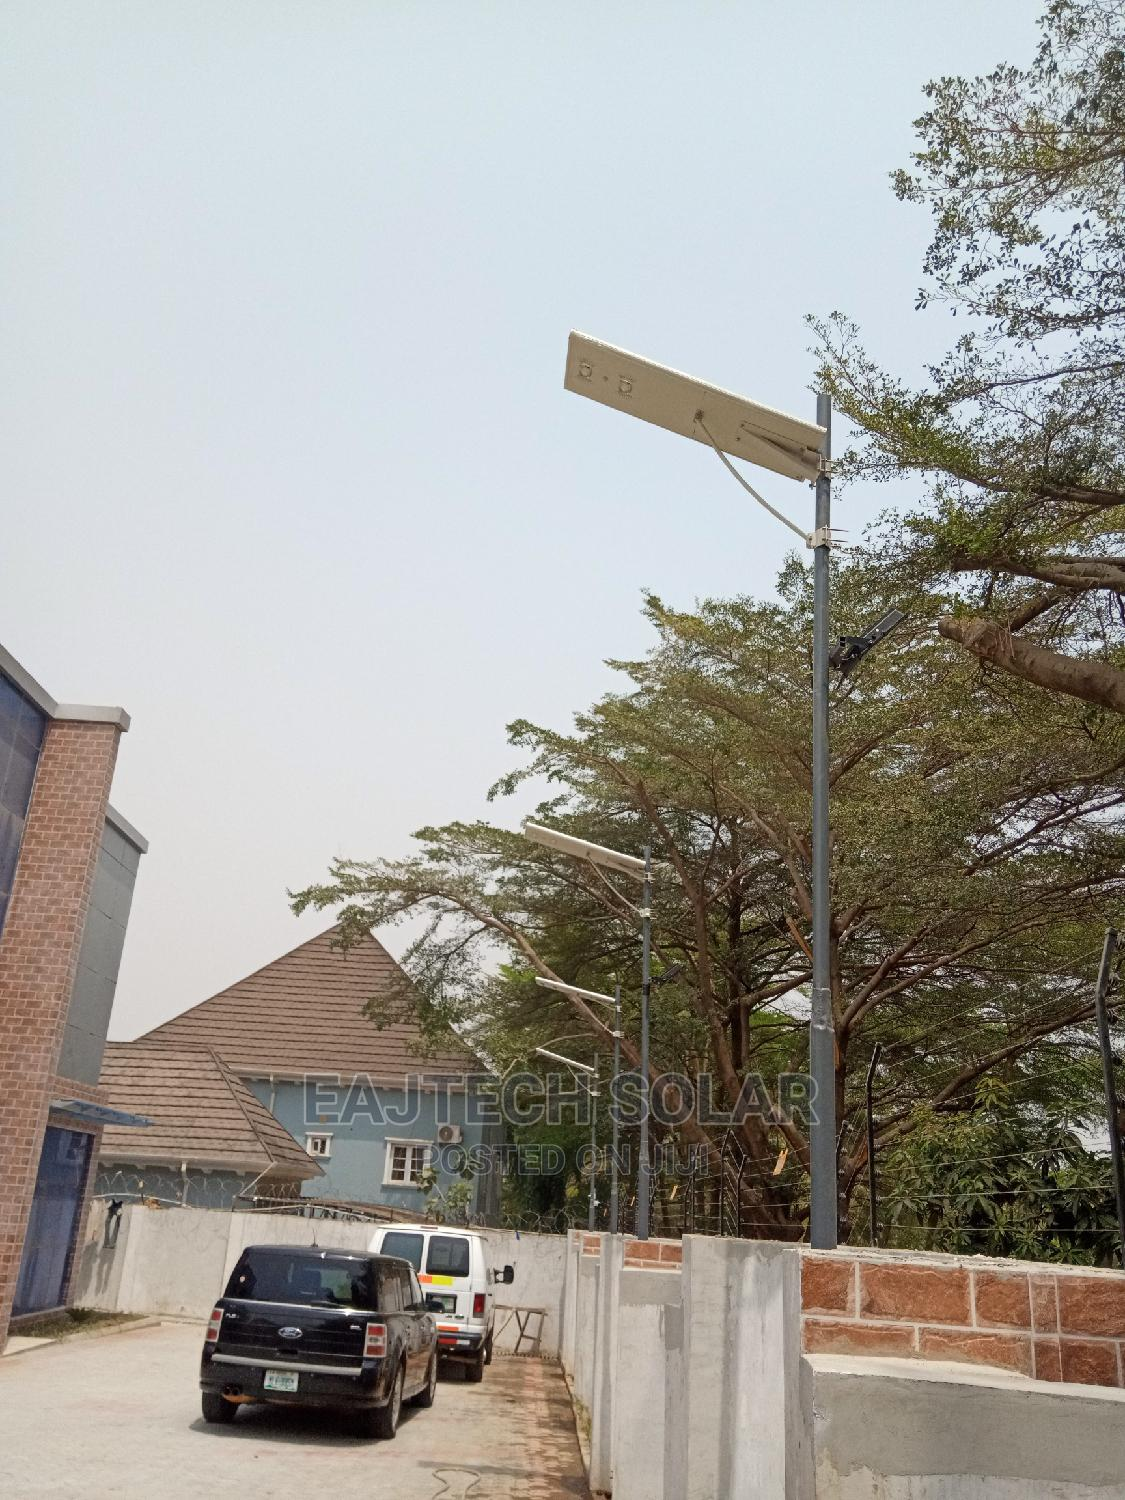 40w 40w All in One Solar Street Light + Pole